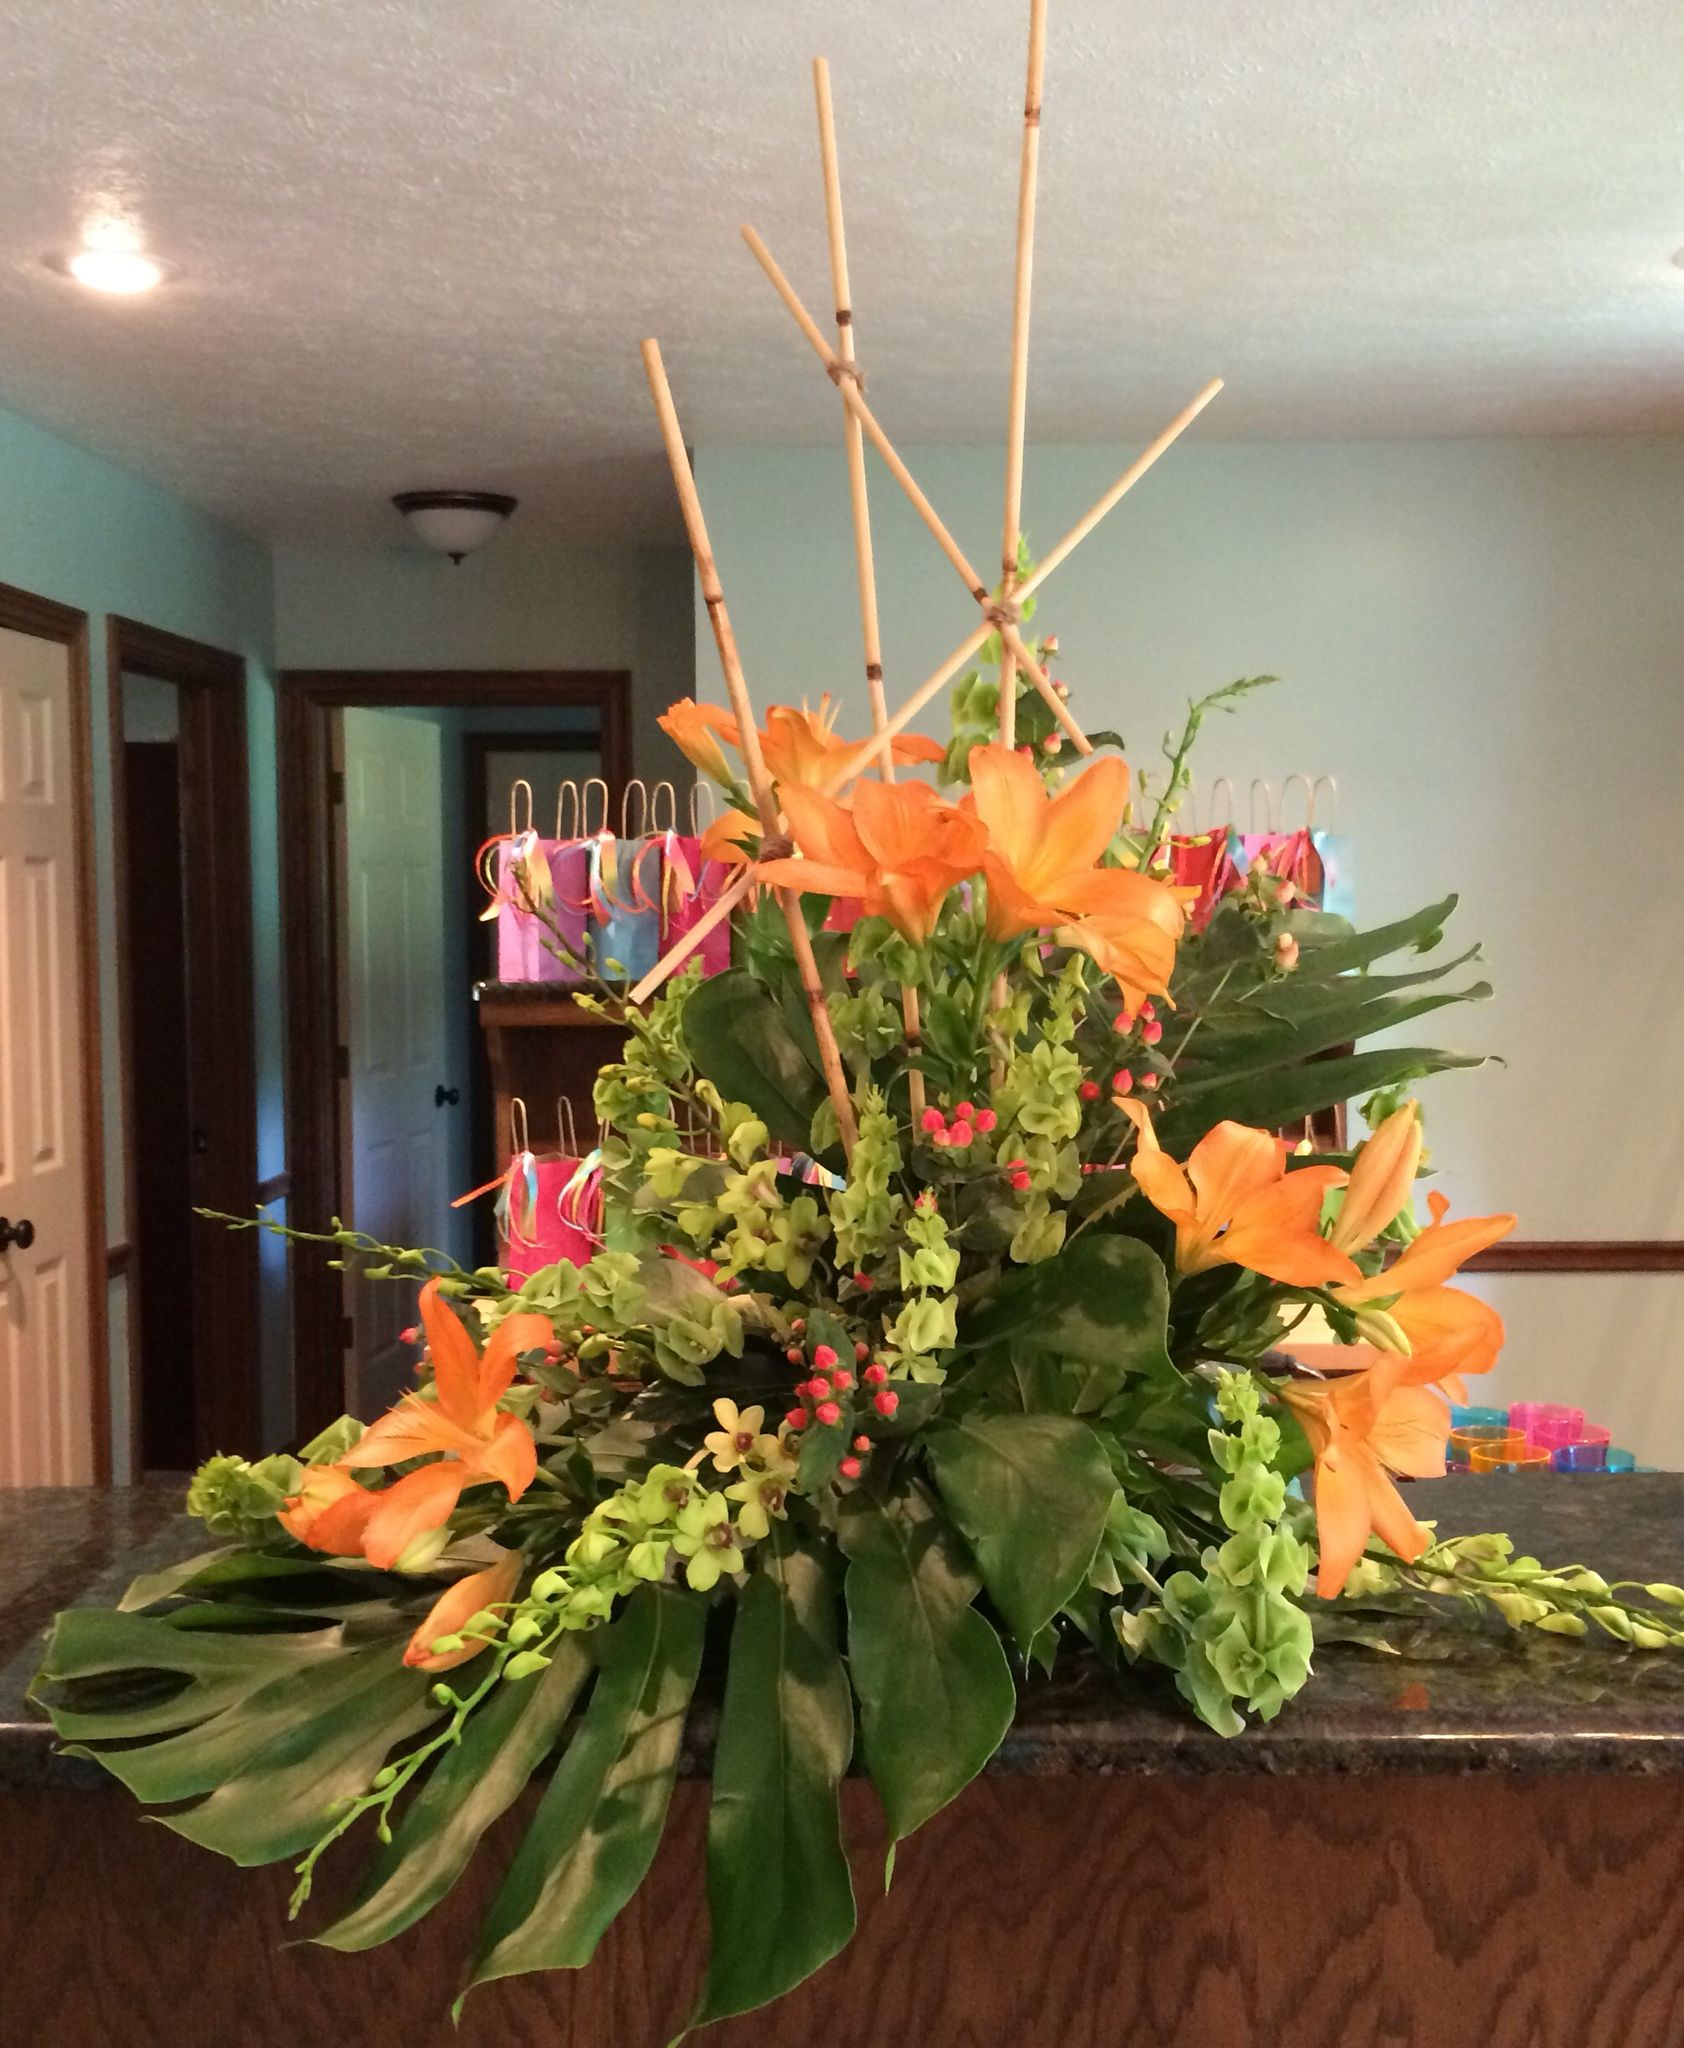 stunning floral display for rianes caribbean themed bridal shower savoir faire event planning did an excellent job as usual